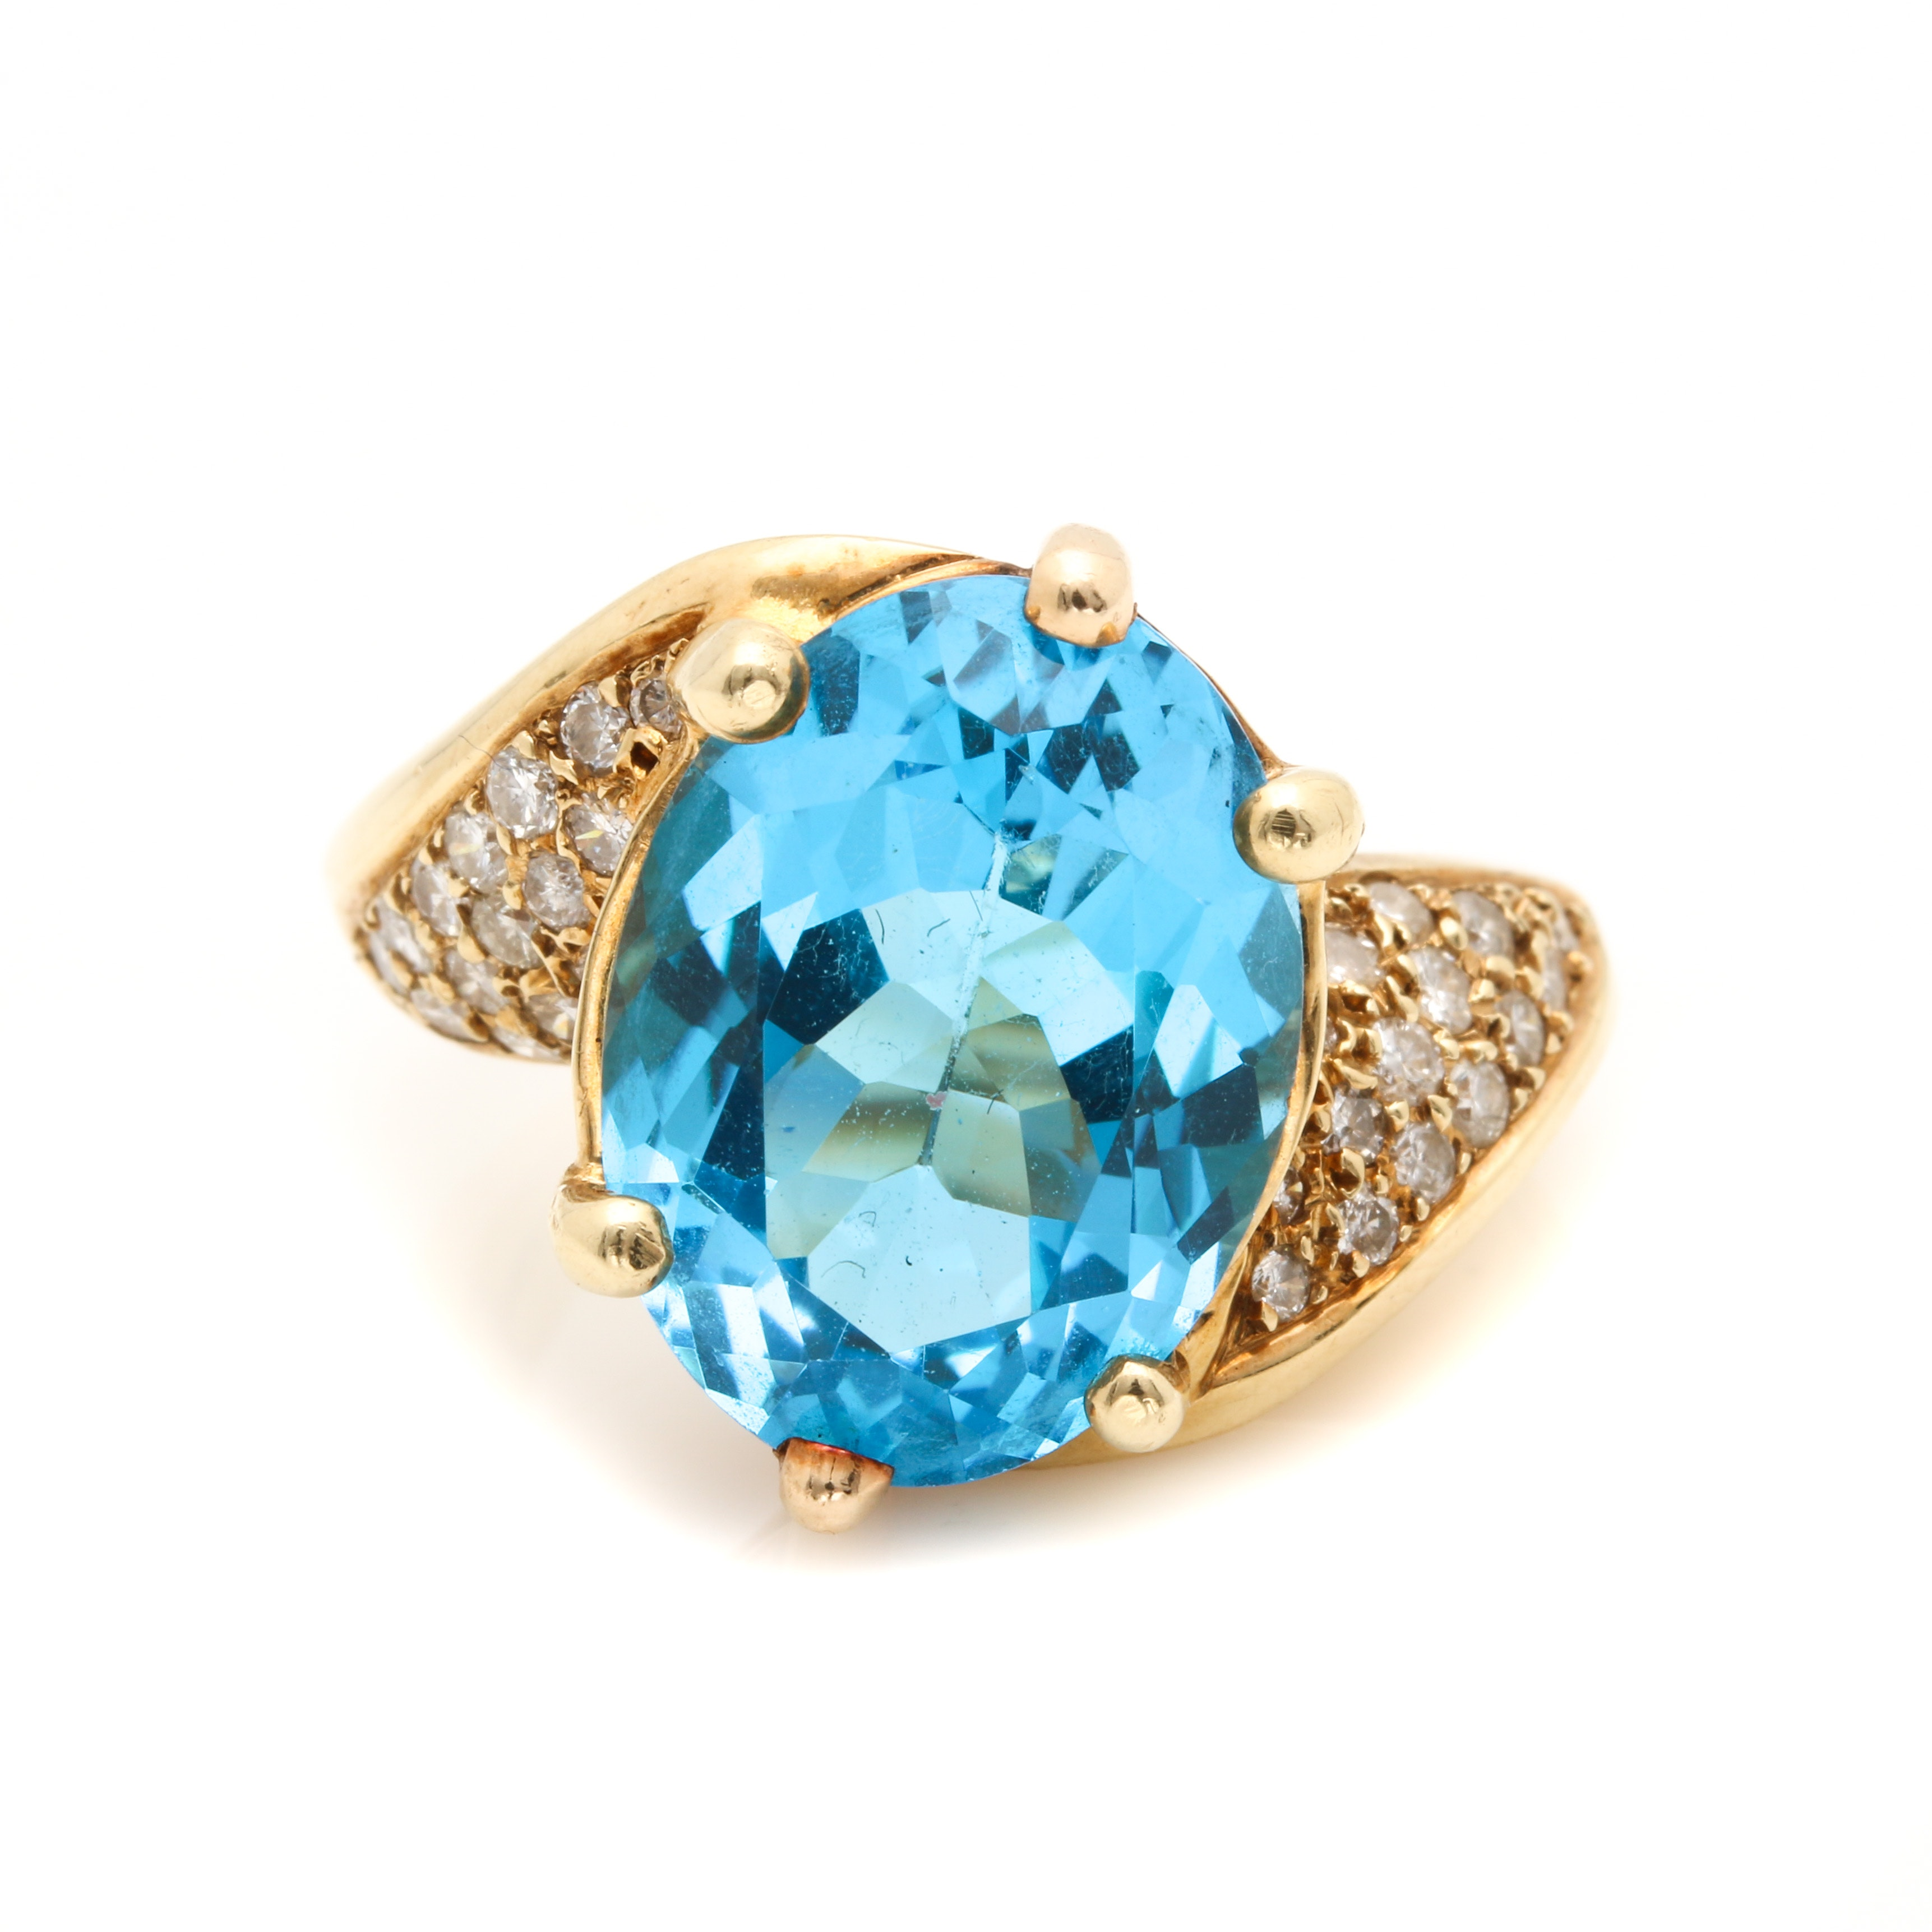 14K Yellow Gold 10.27 CT Blue Topaz and Diamond Ring